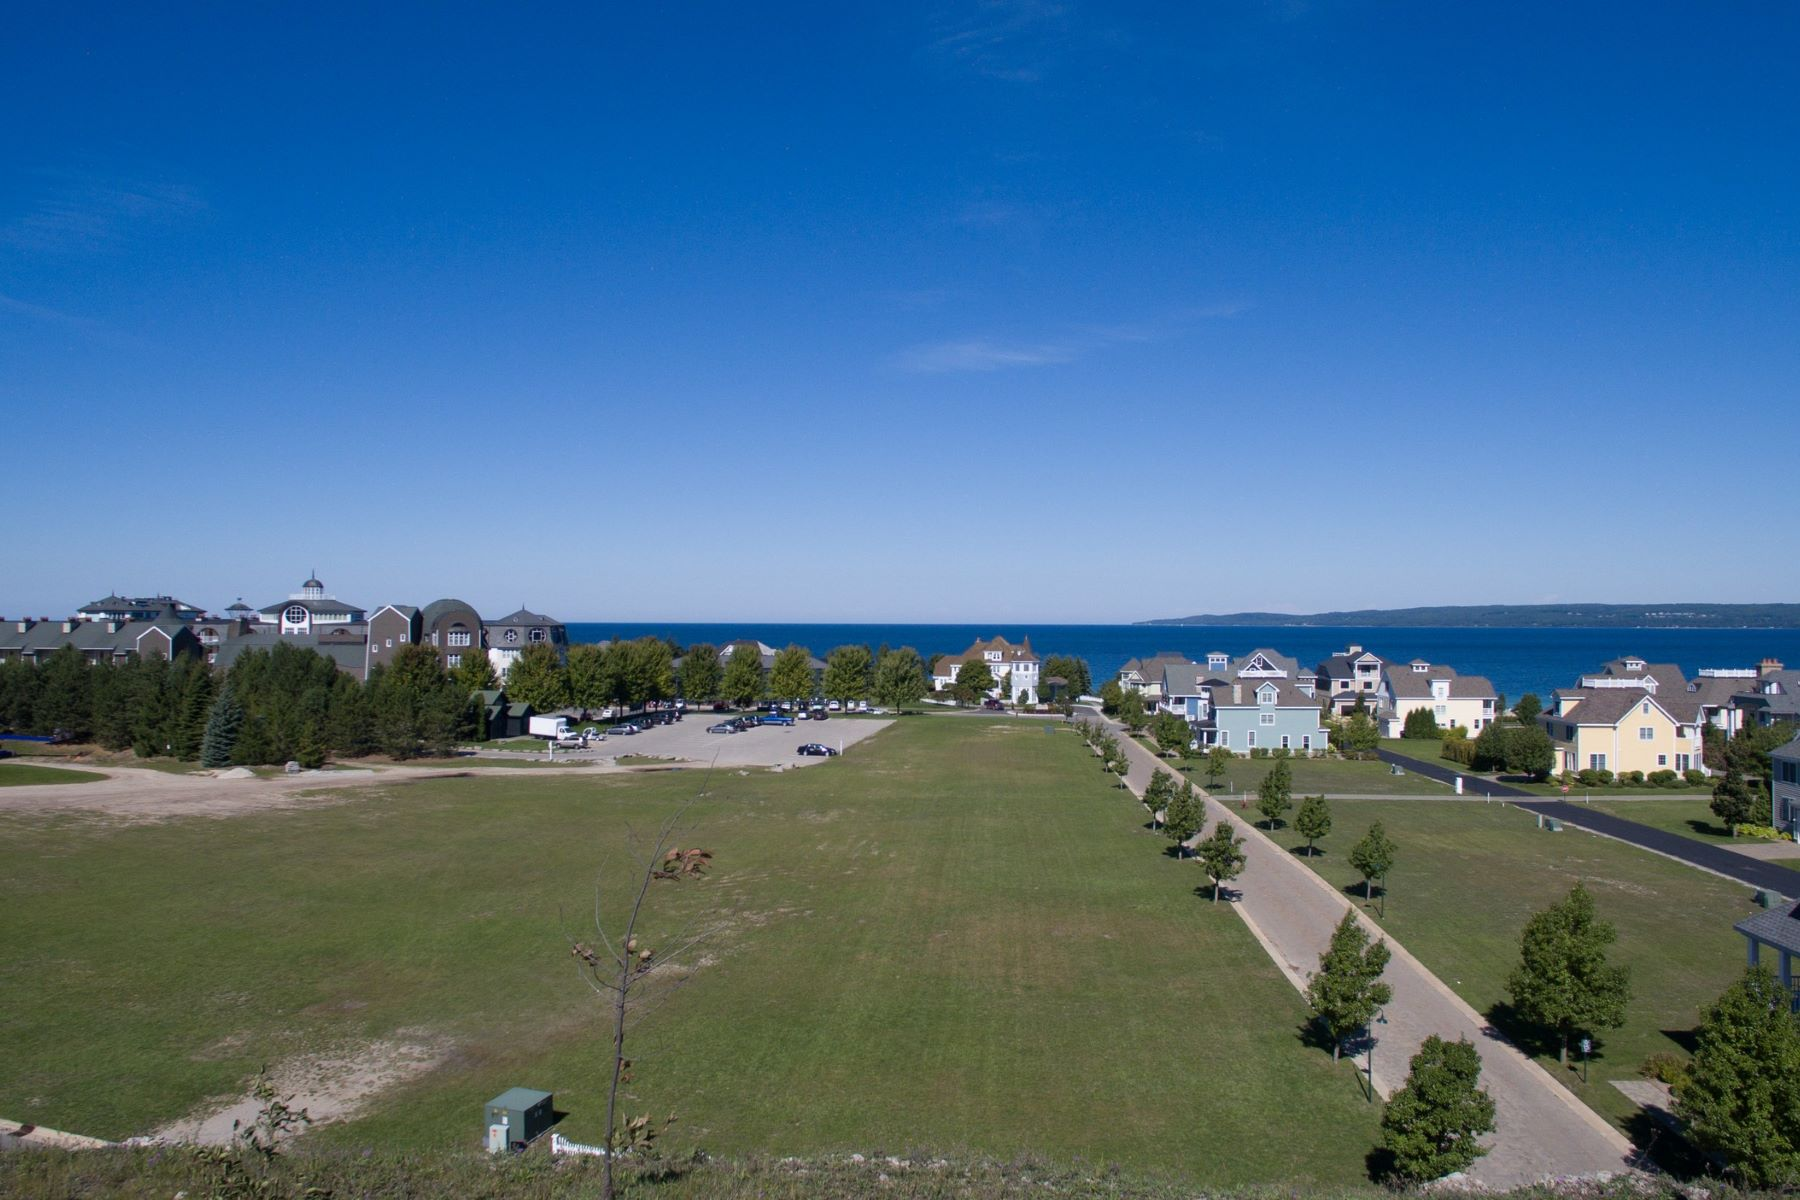 Land for Sale at Unit 8, The Ridge TBD Cliffs Drive, Unit 8, The Ridge Bay Harbor, Michigan, 49770 United States